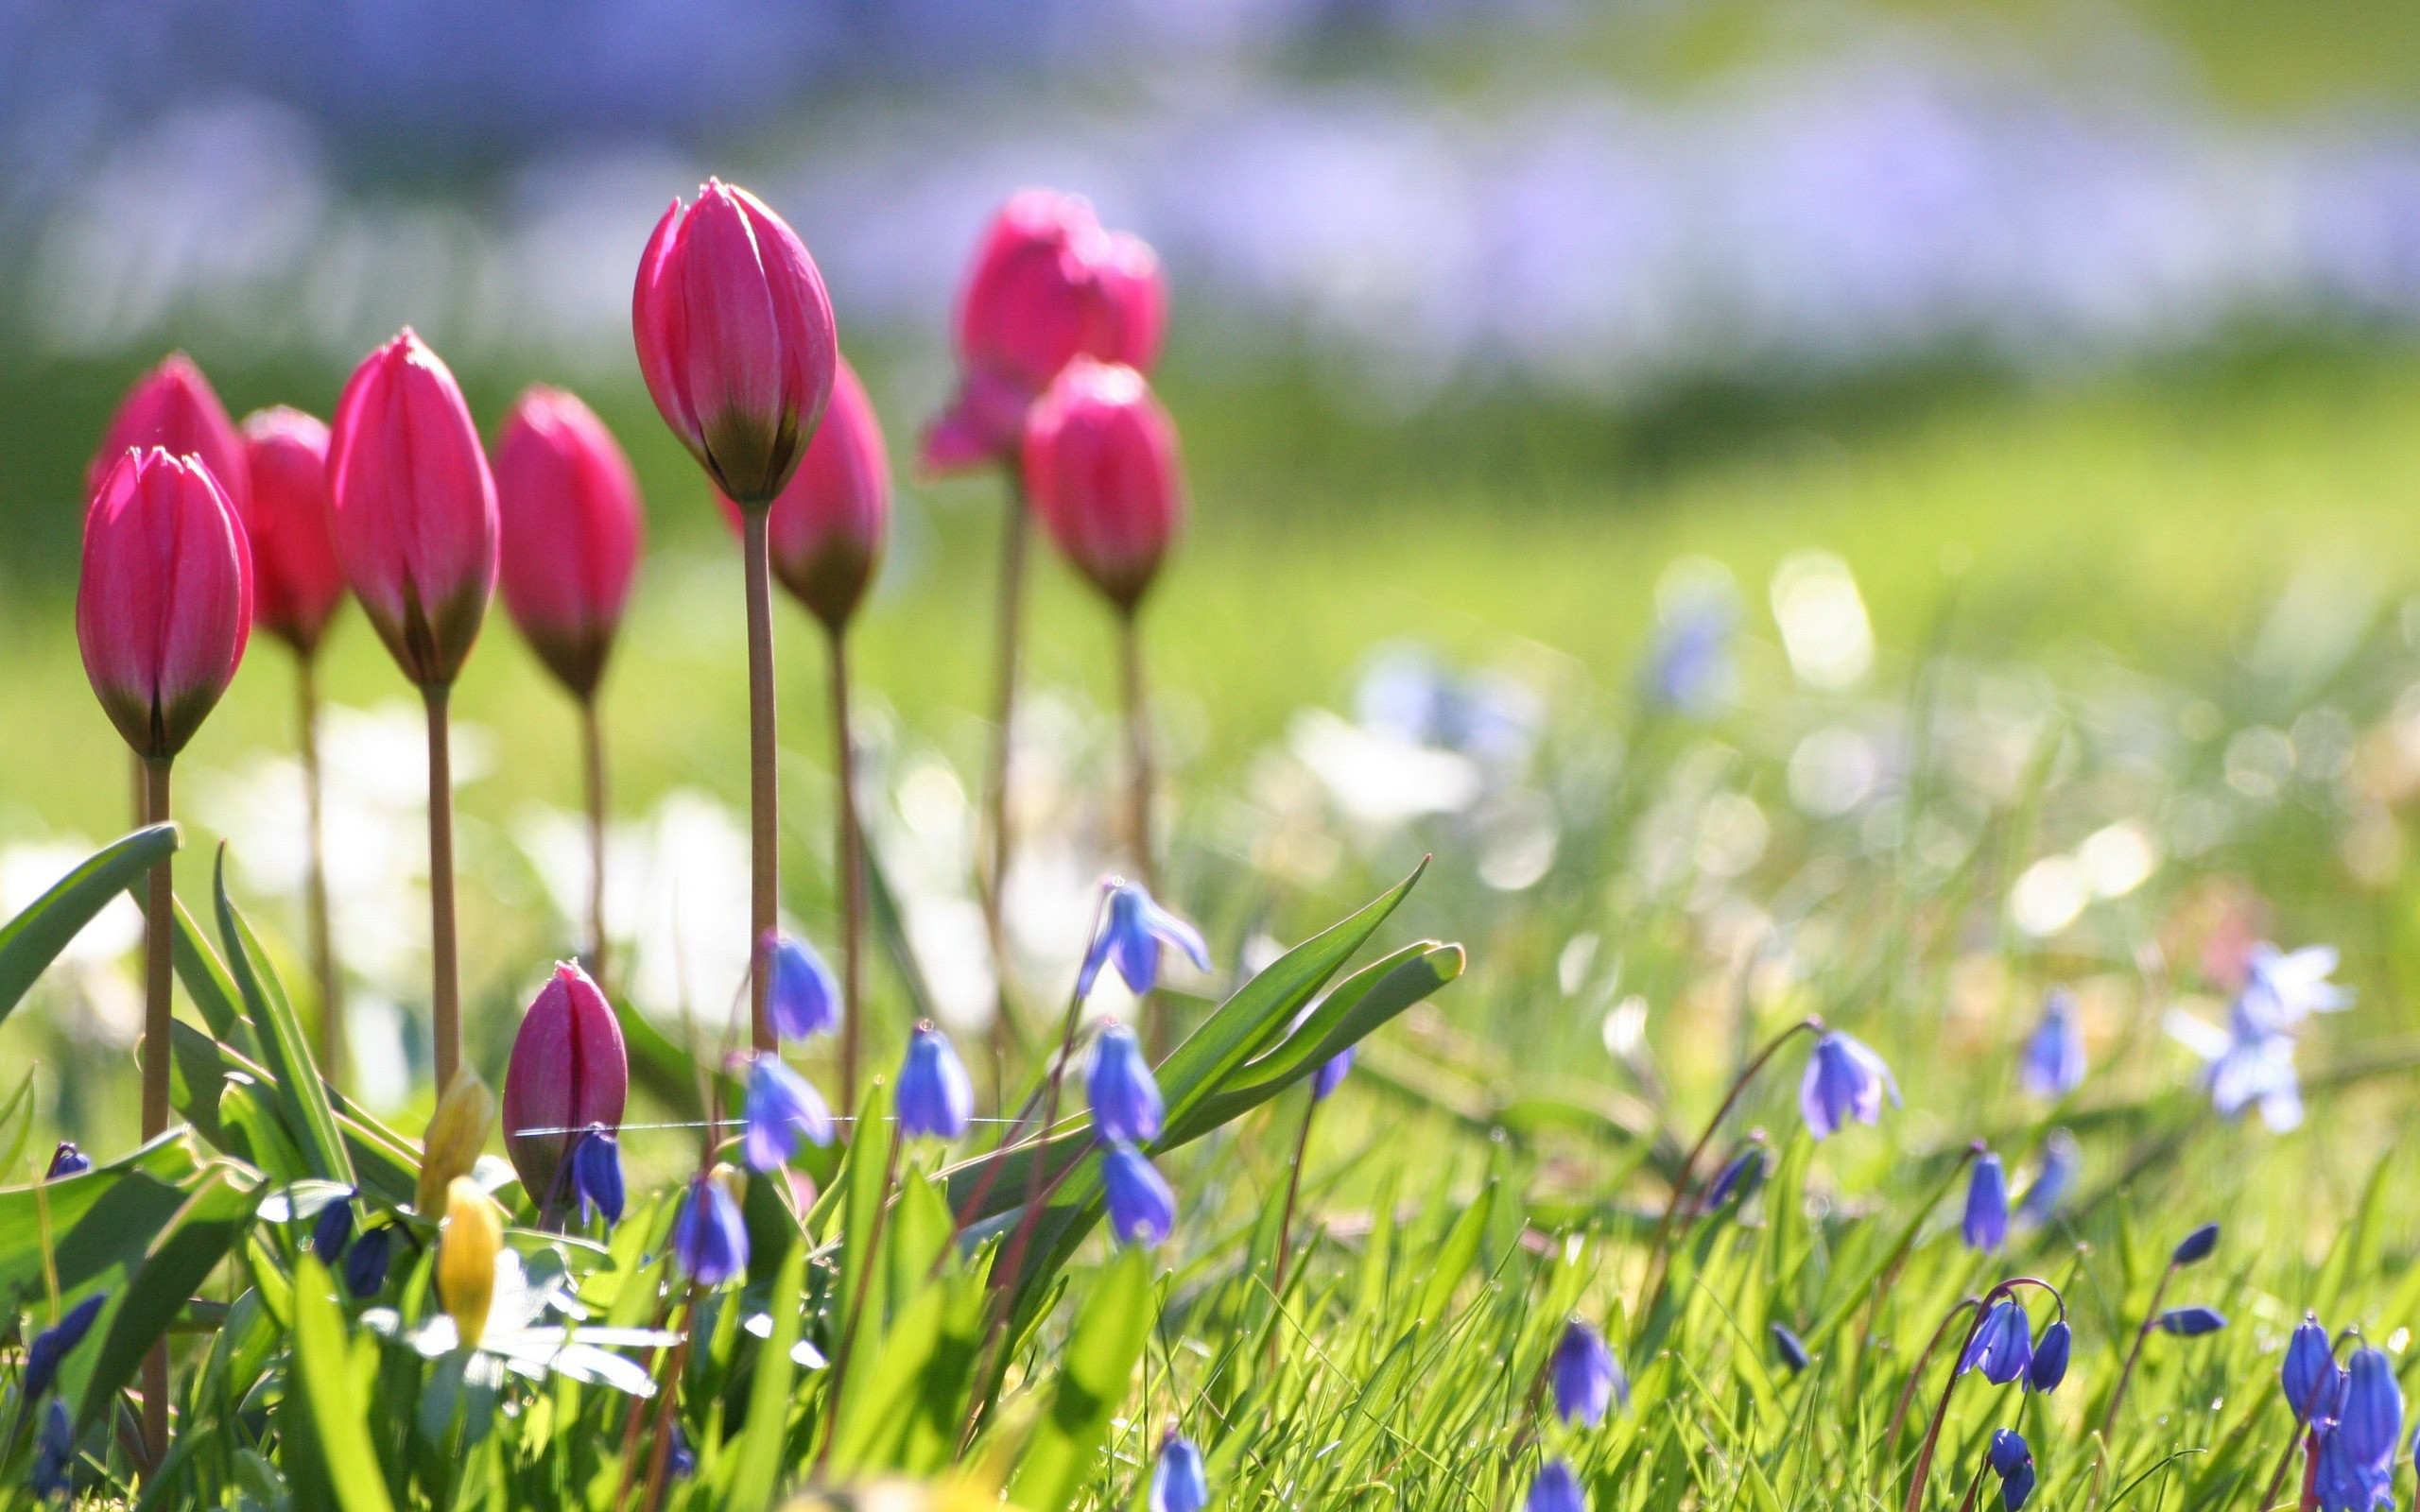 Free picture of spring flowers clip art library library Hd Pc Spring Flowers Wallpapers Download clip art library library